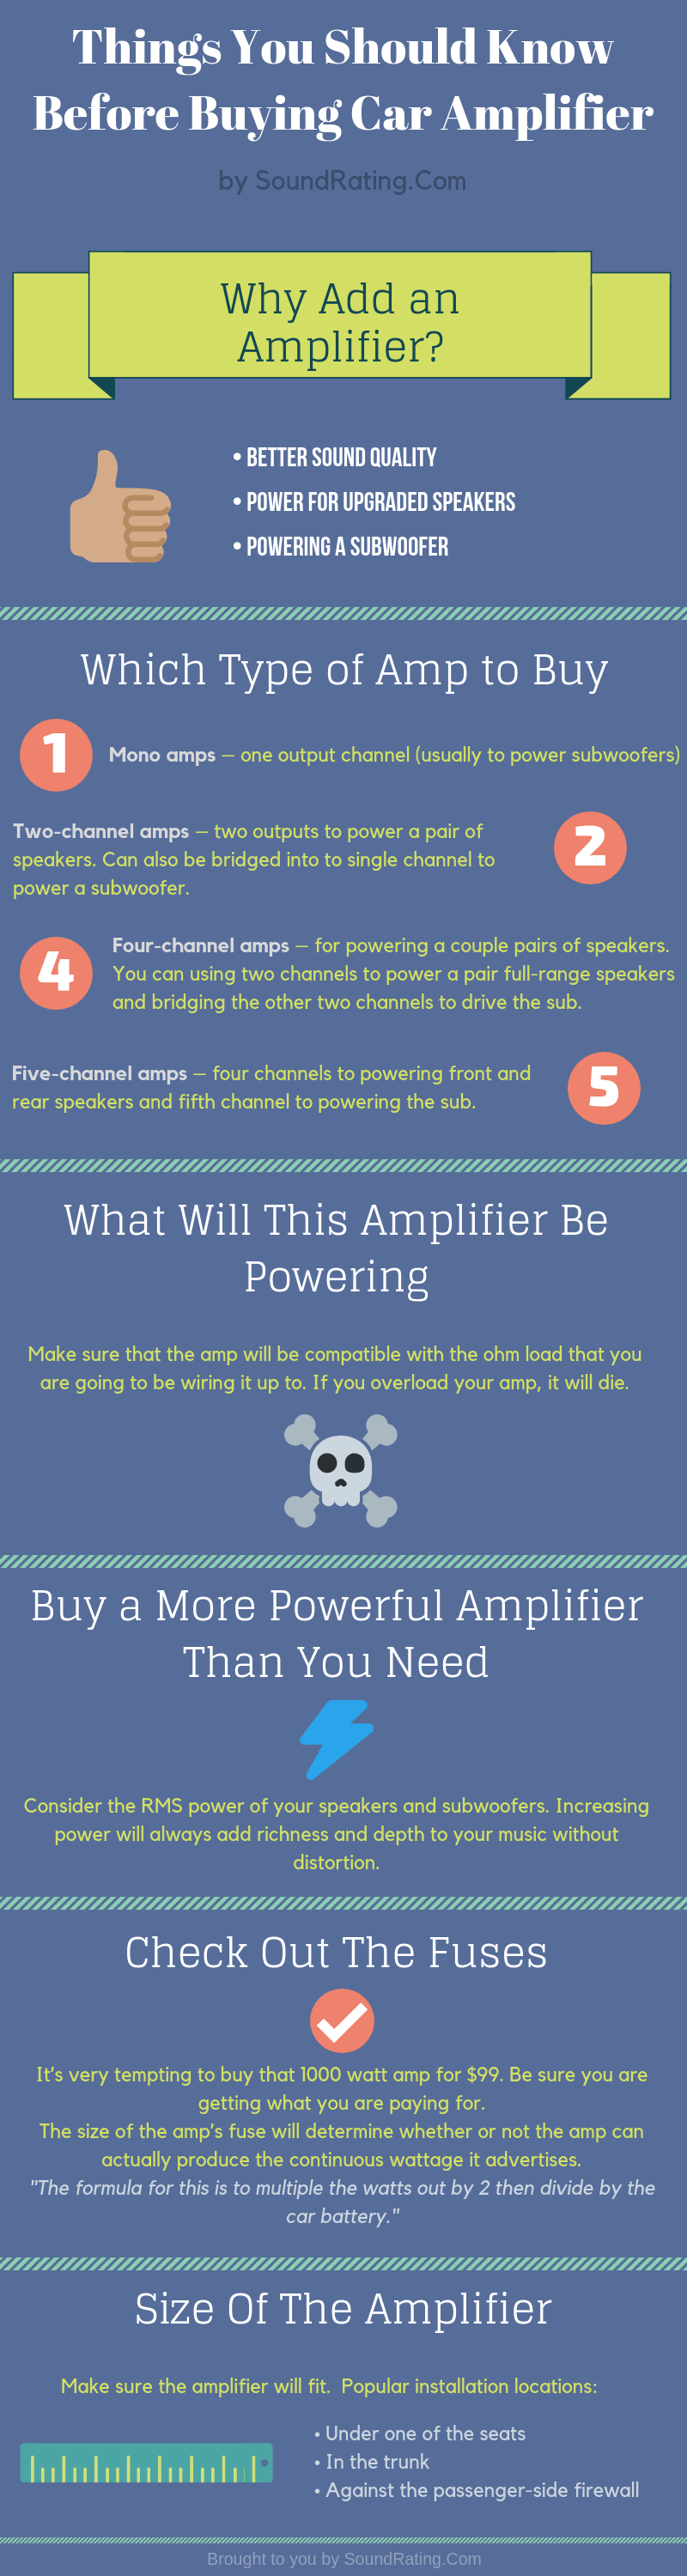 Best 4 Channel Amplifiers In 2018 Top 7 Updated Infographic 3 Amp Wiring Diagram Mtx Amplifier Buyers Guide